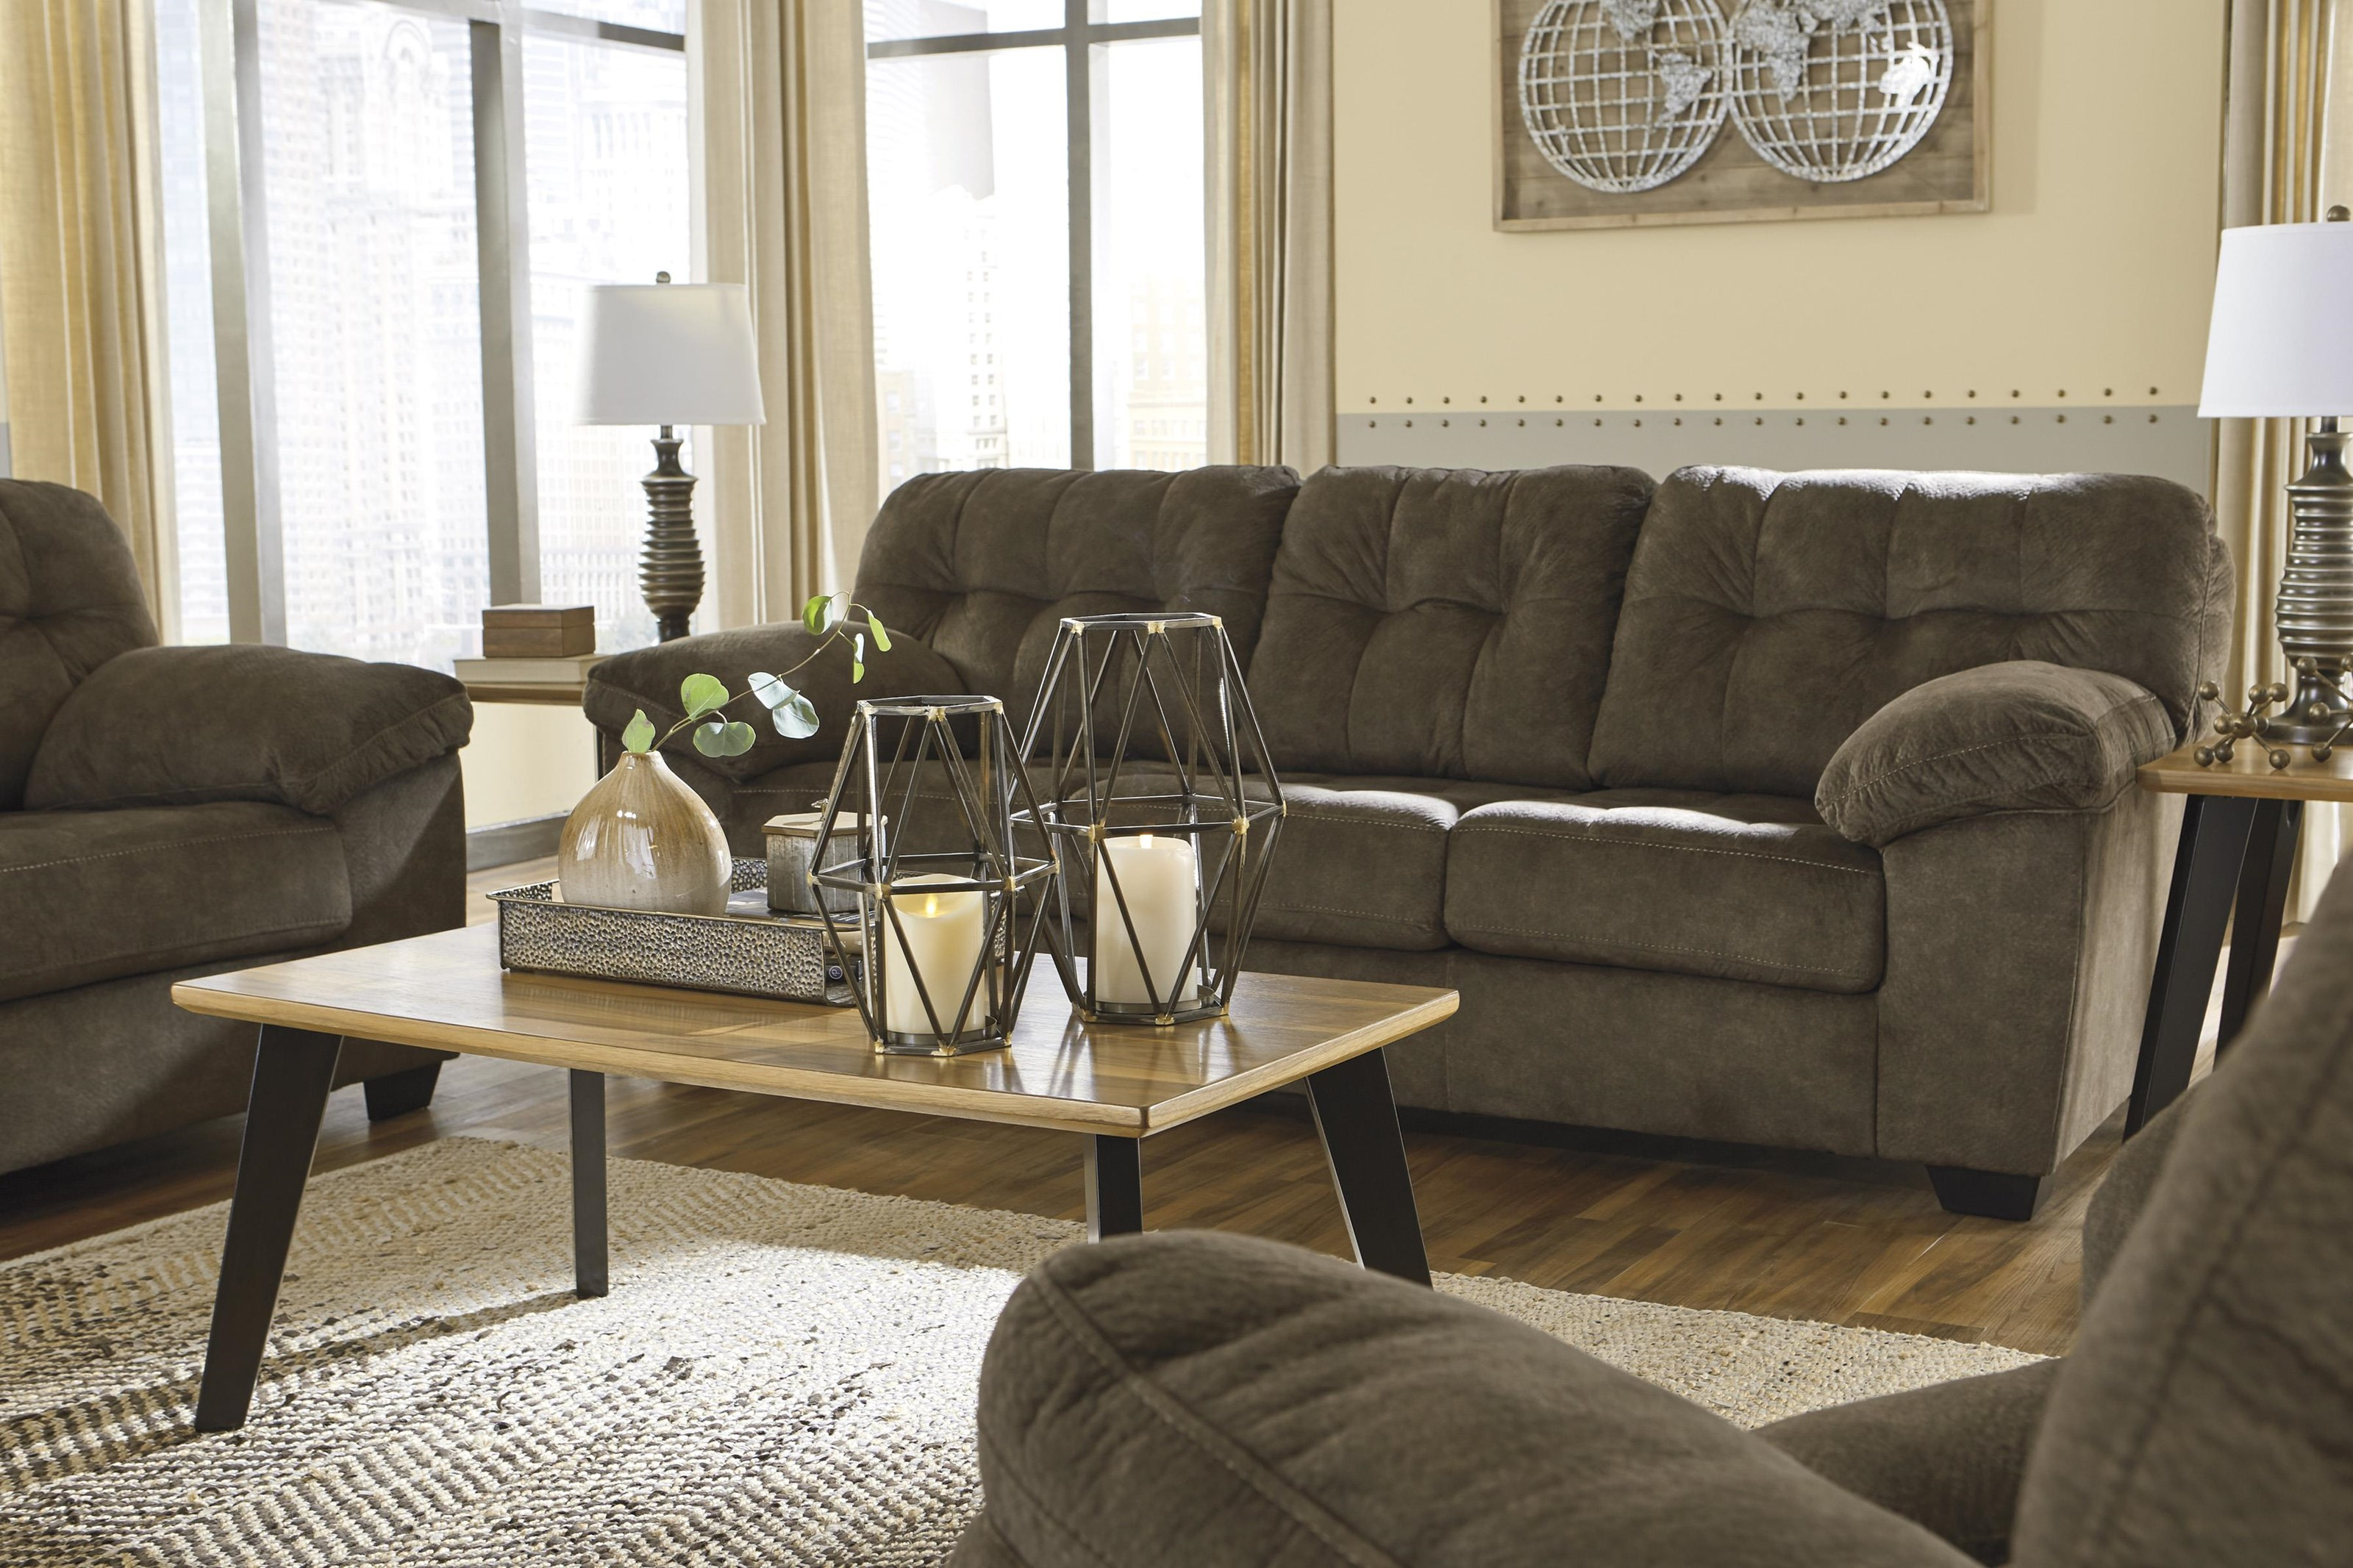 Accrington Sofa and Recliner Set by Signature Design by Ashley at Sam Levitz Outlet